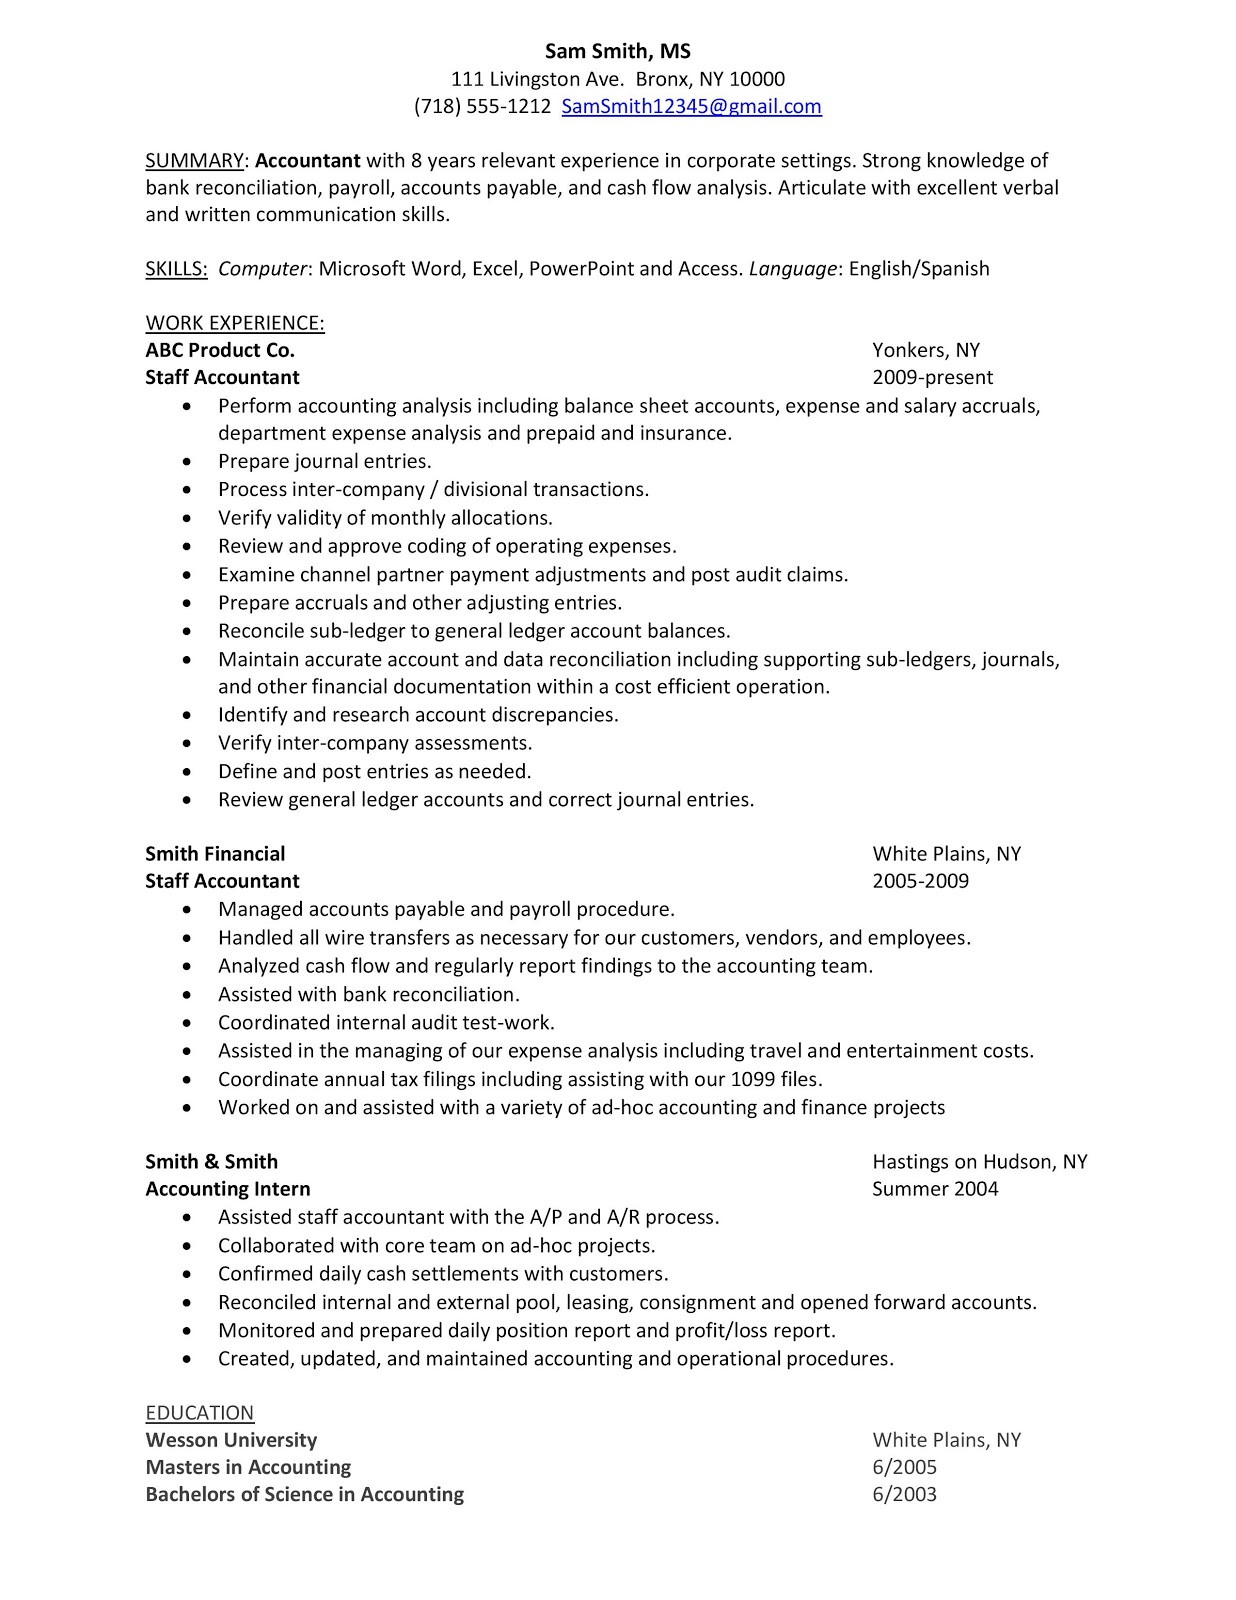 Sample Resume Staff Accountant Winning Answers To 500 Interview